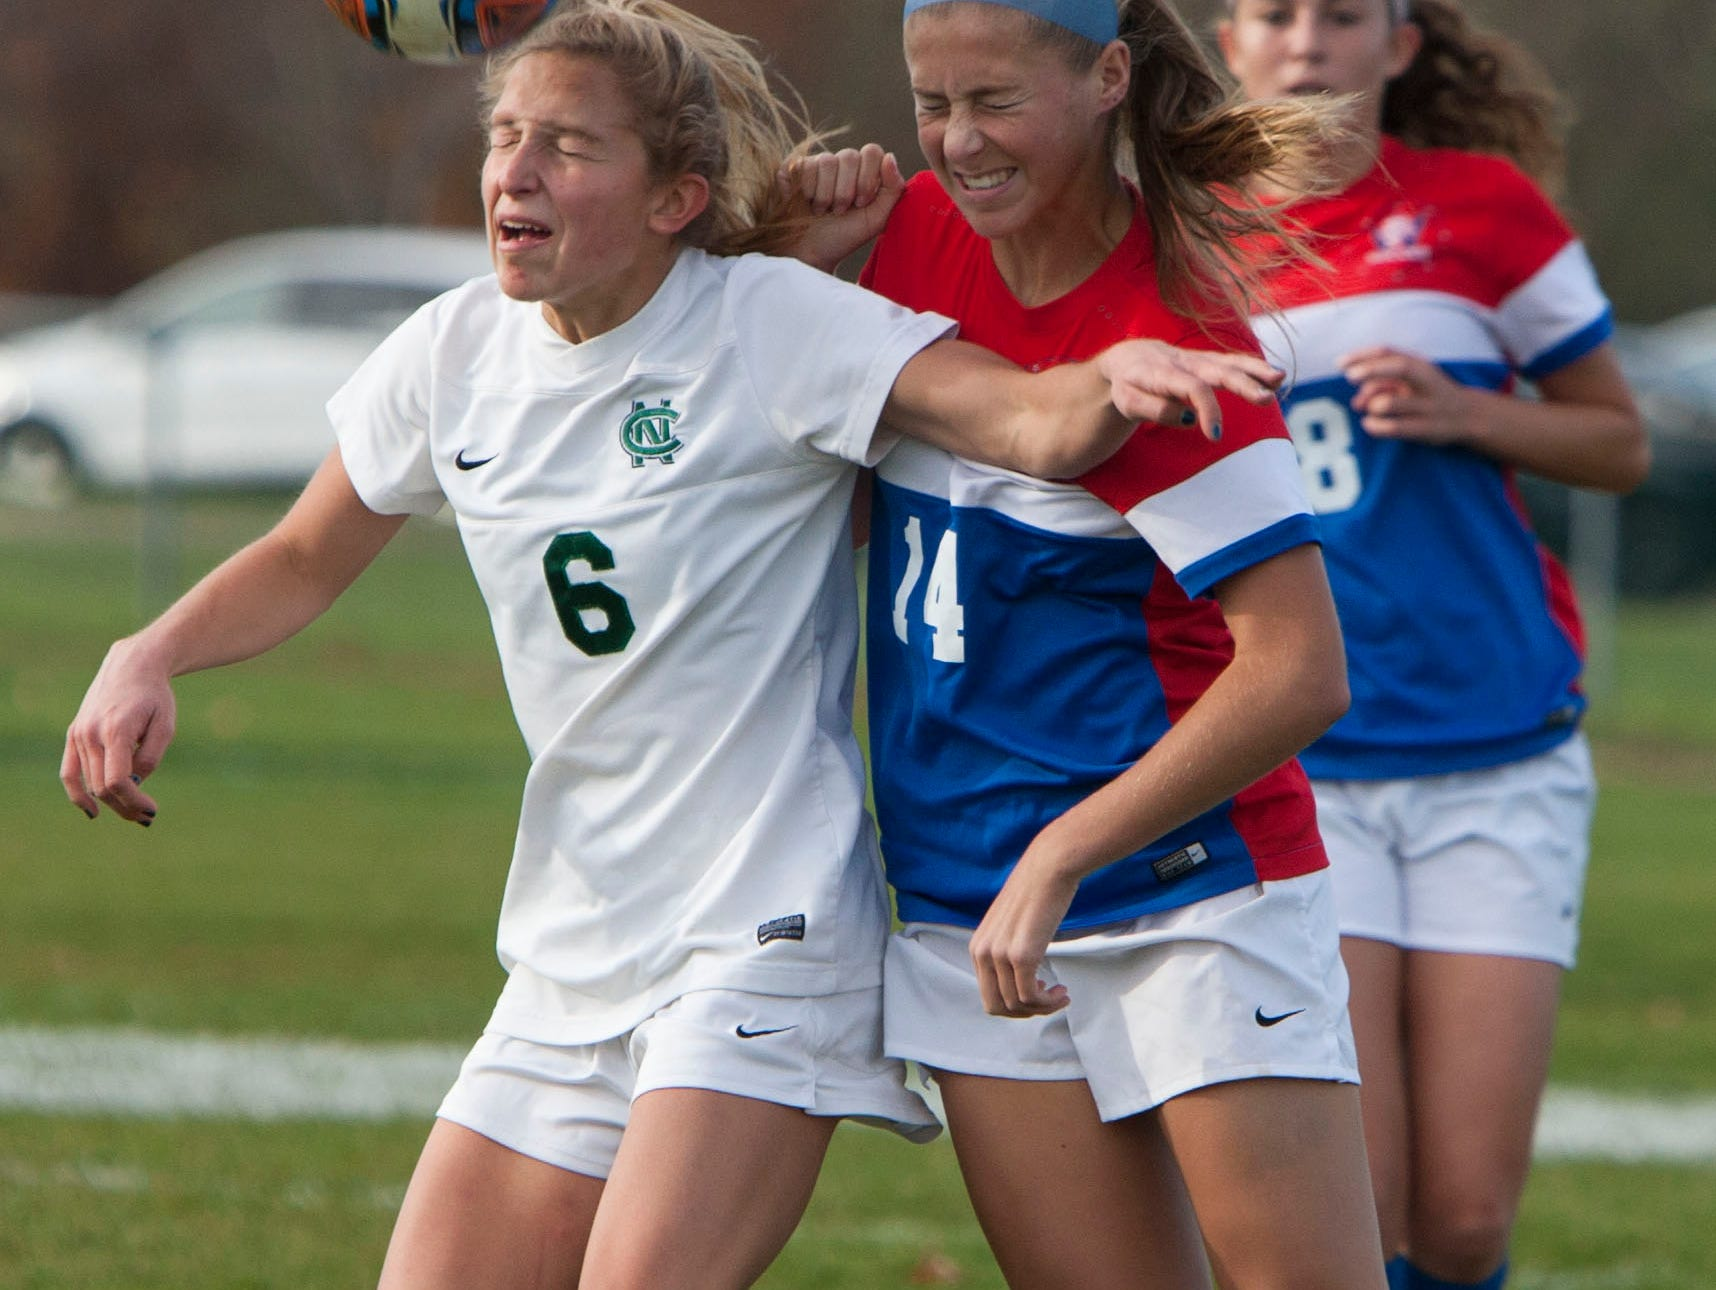 Girls soccer Wall at Colts Neck. CN #6 Allison Russo heads the ball in front of Wall #14 Hailee Reinhardt—November 9, 2015-Colts Neck, NJ.-Staff photographer/Bob Bielk/Asbury Park Press